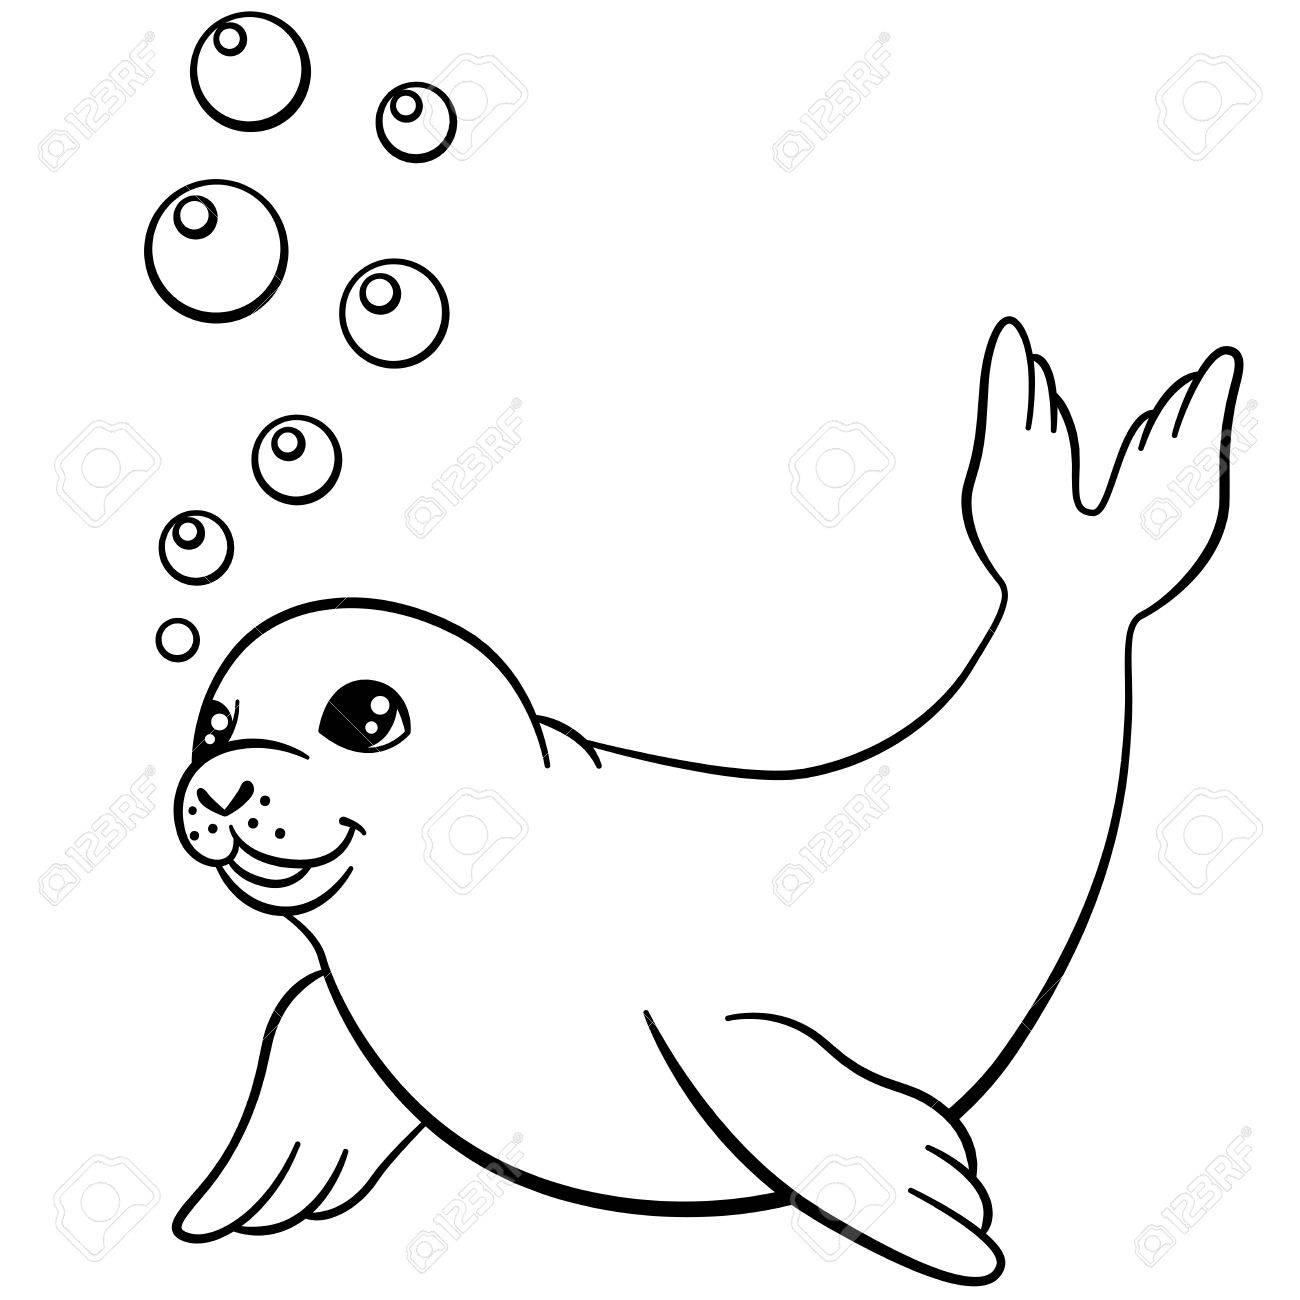 1300x1300 Coloring Pages. Little Cute Baby Seal Swims And Smiles. Royalty